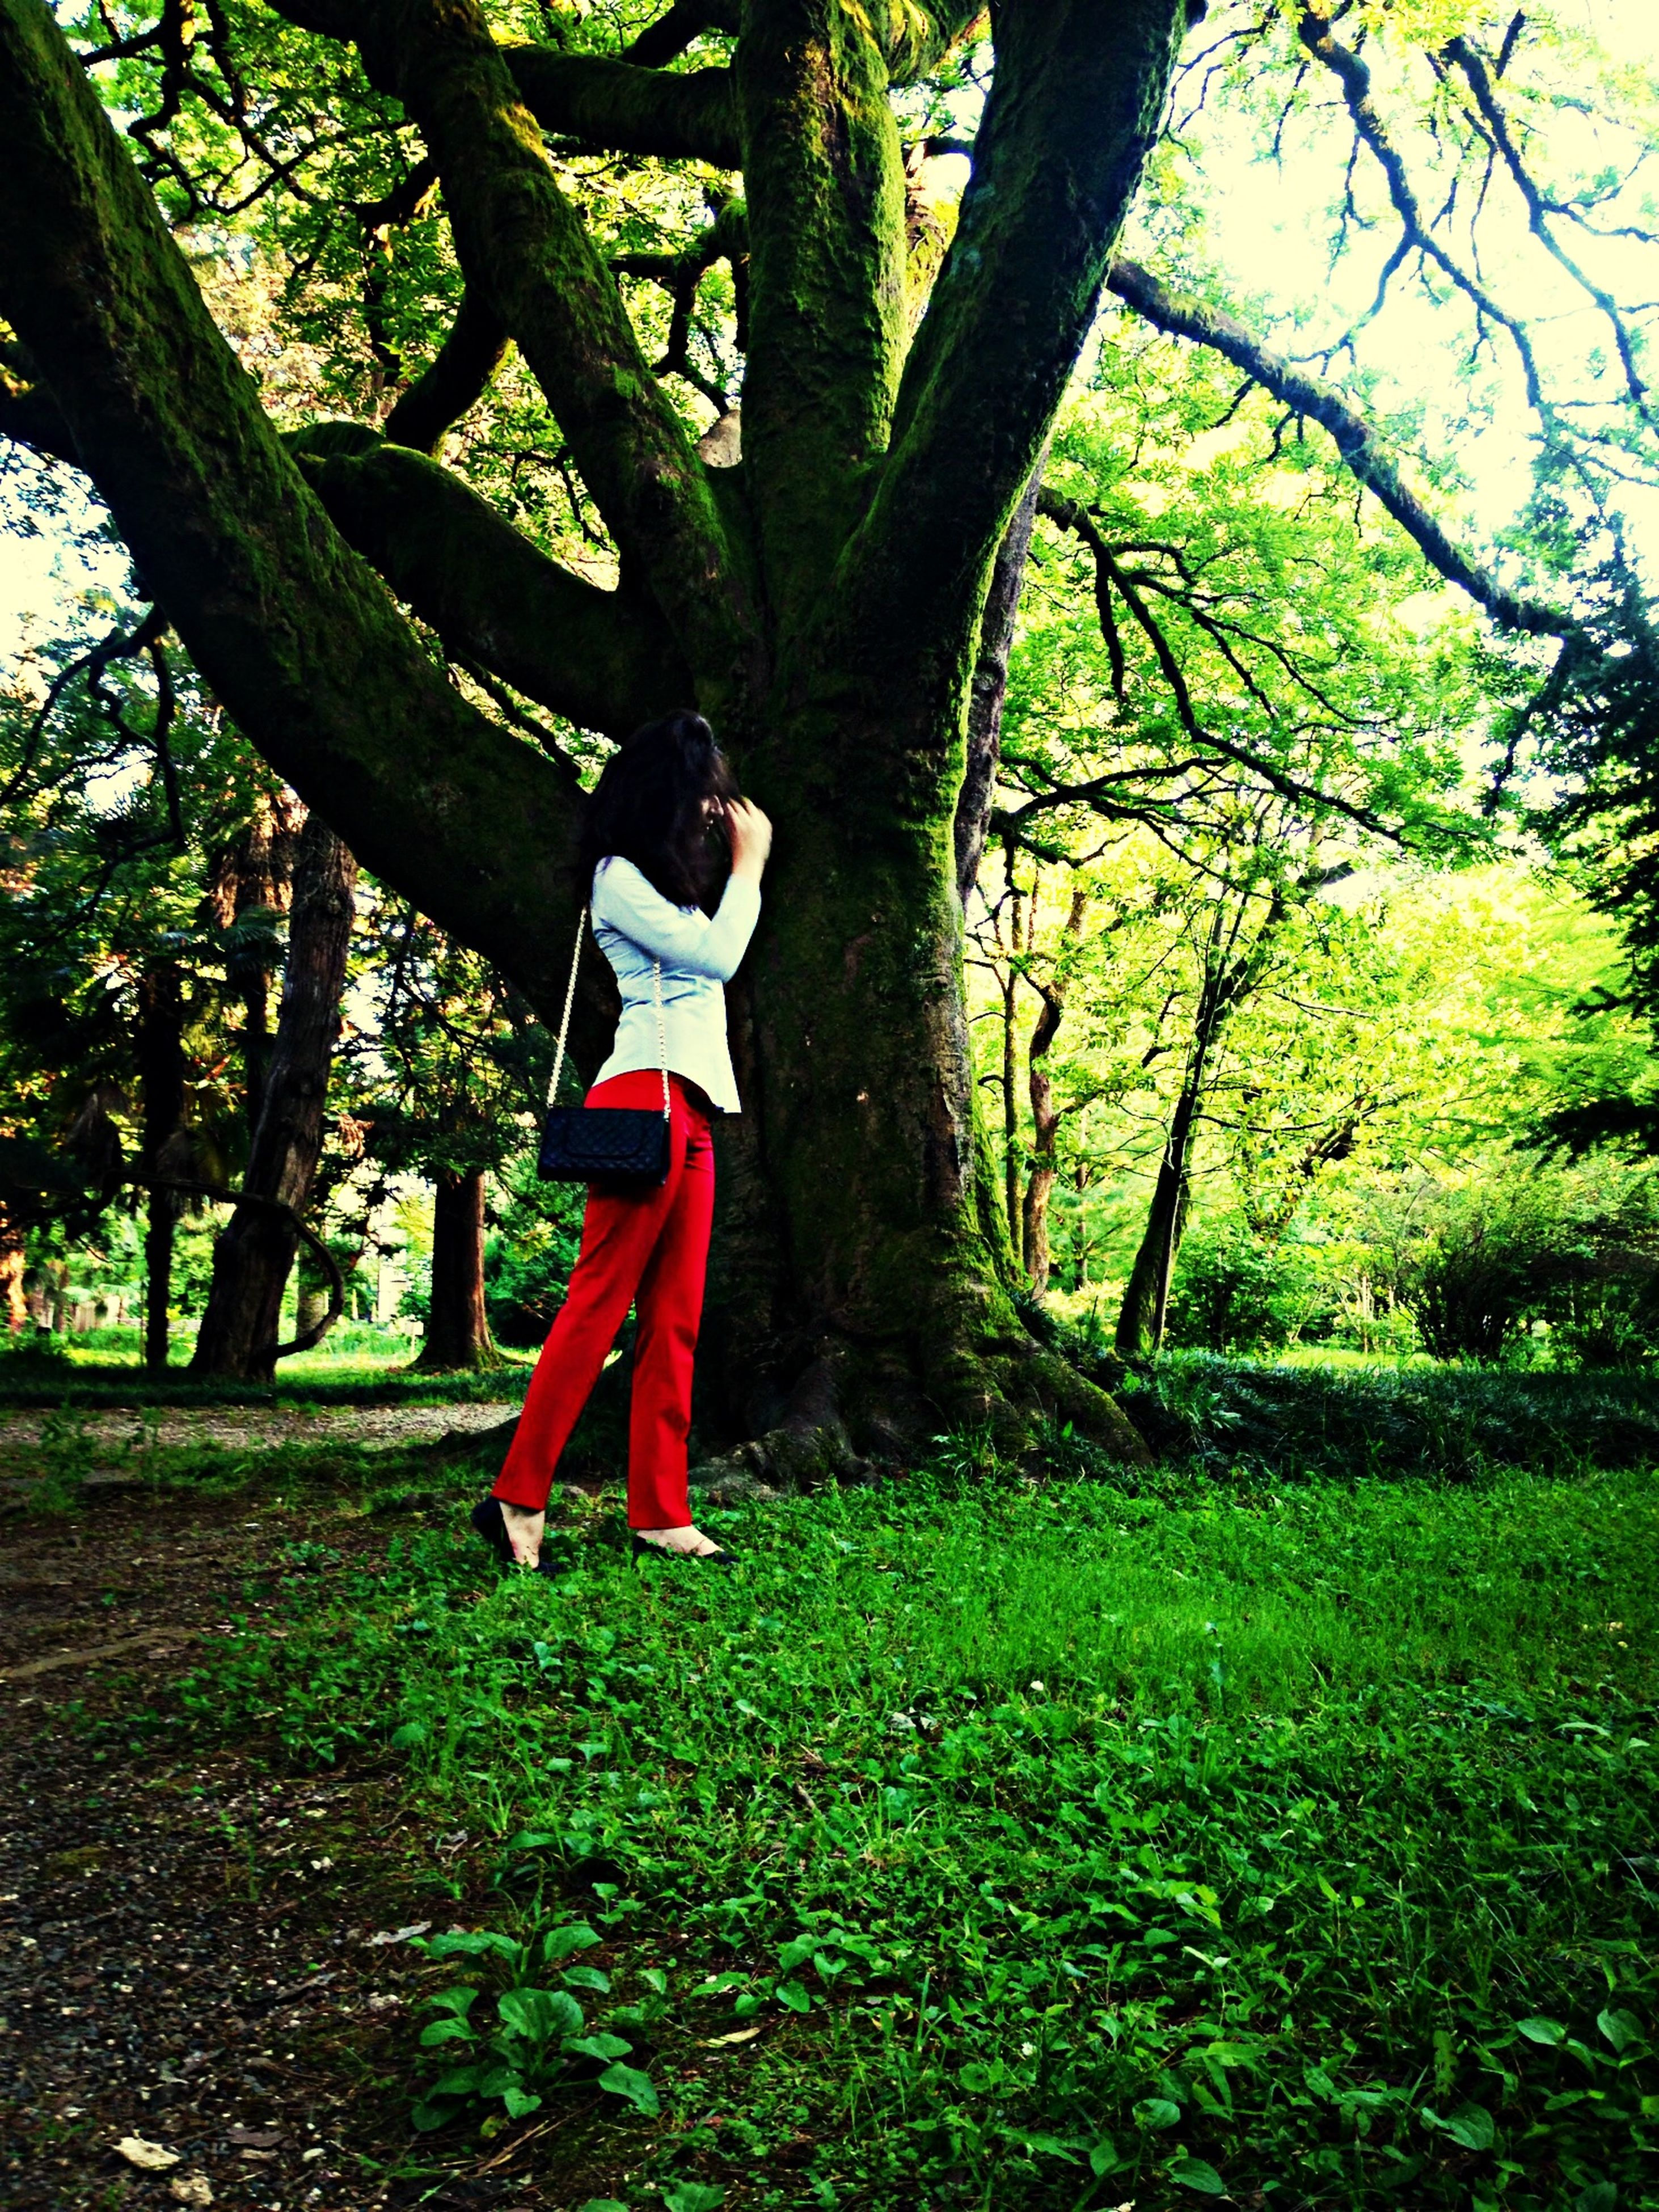 tree, full length, lifestyles, childhood, casual clothing, leisure activity, grass, park - man made space, tree trunk, girls, elementary age, growth, rear view, standing, person, nature, boys, branch